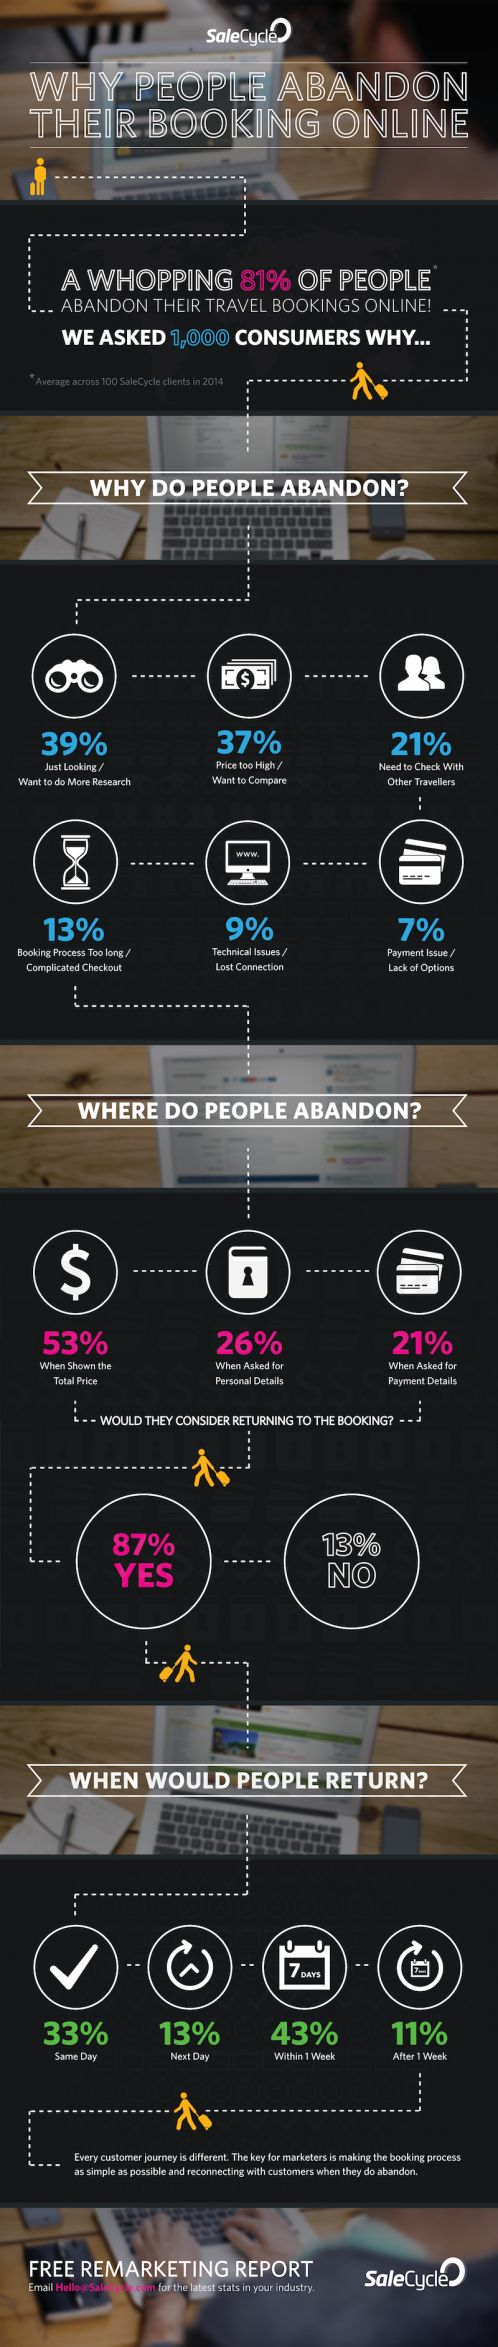 Infographic: Salecycle research reveals why four-fifths of customers abandon online travel bookings